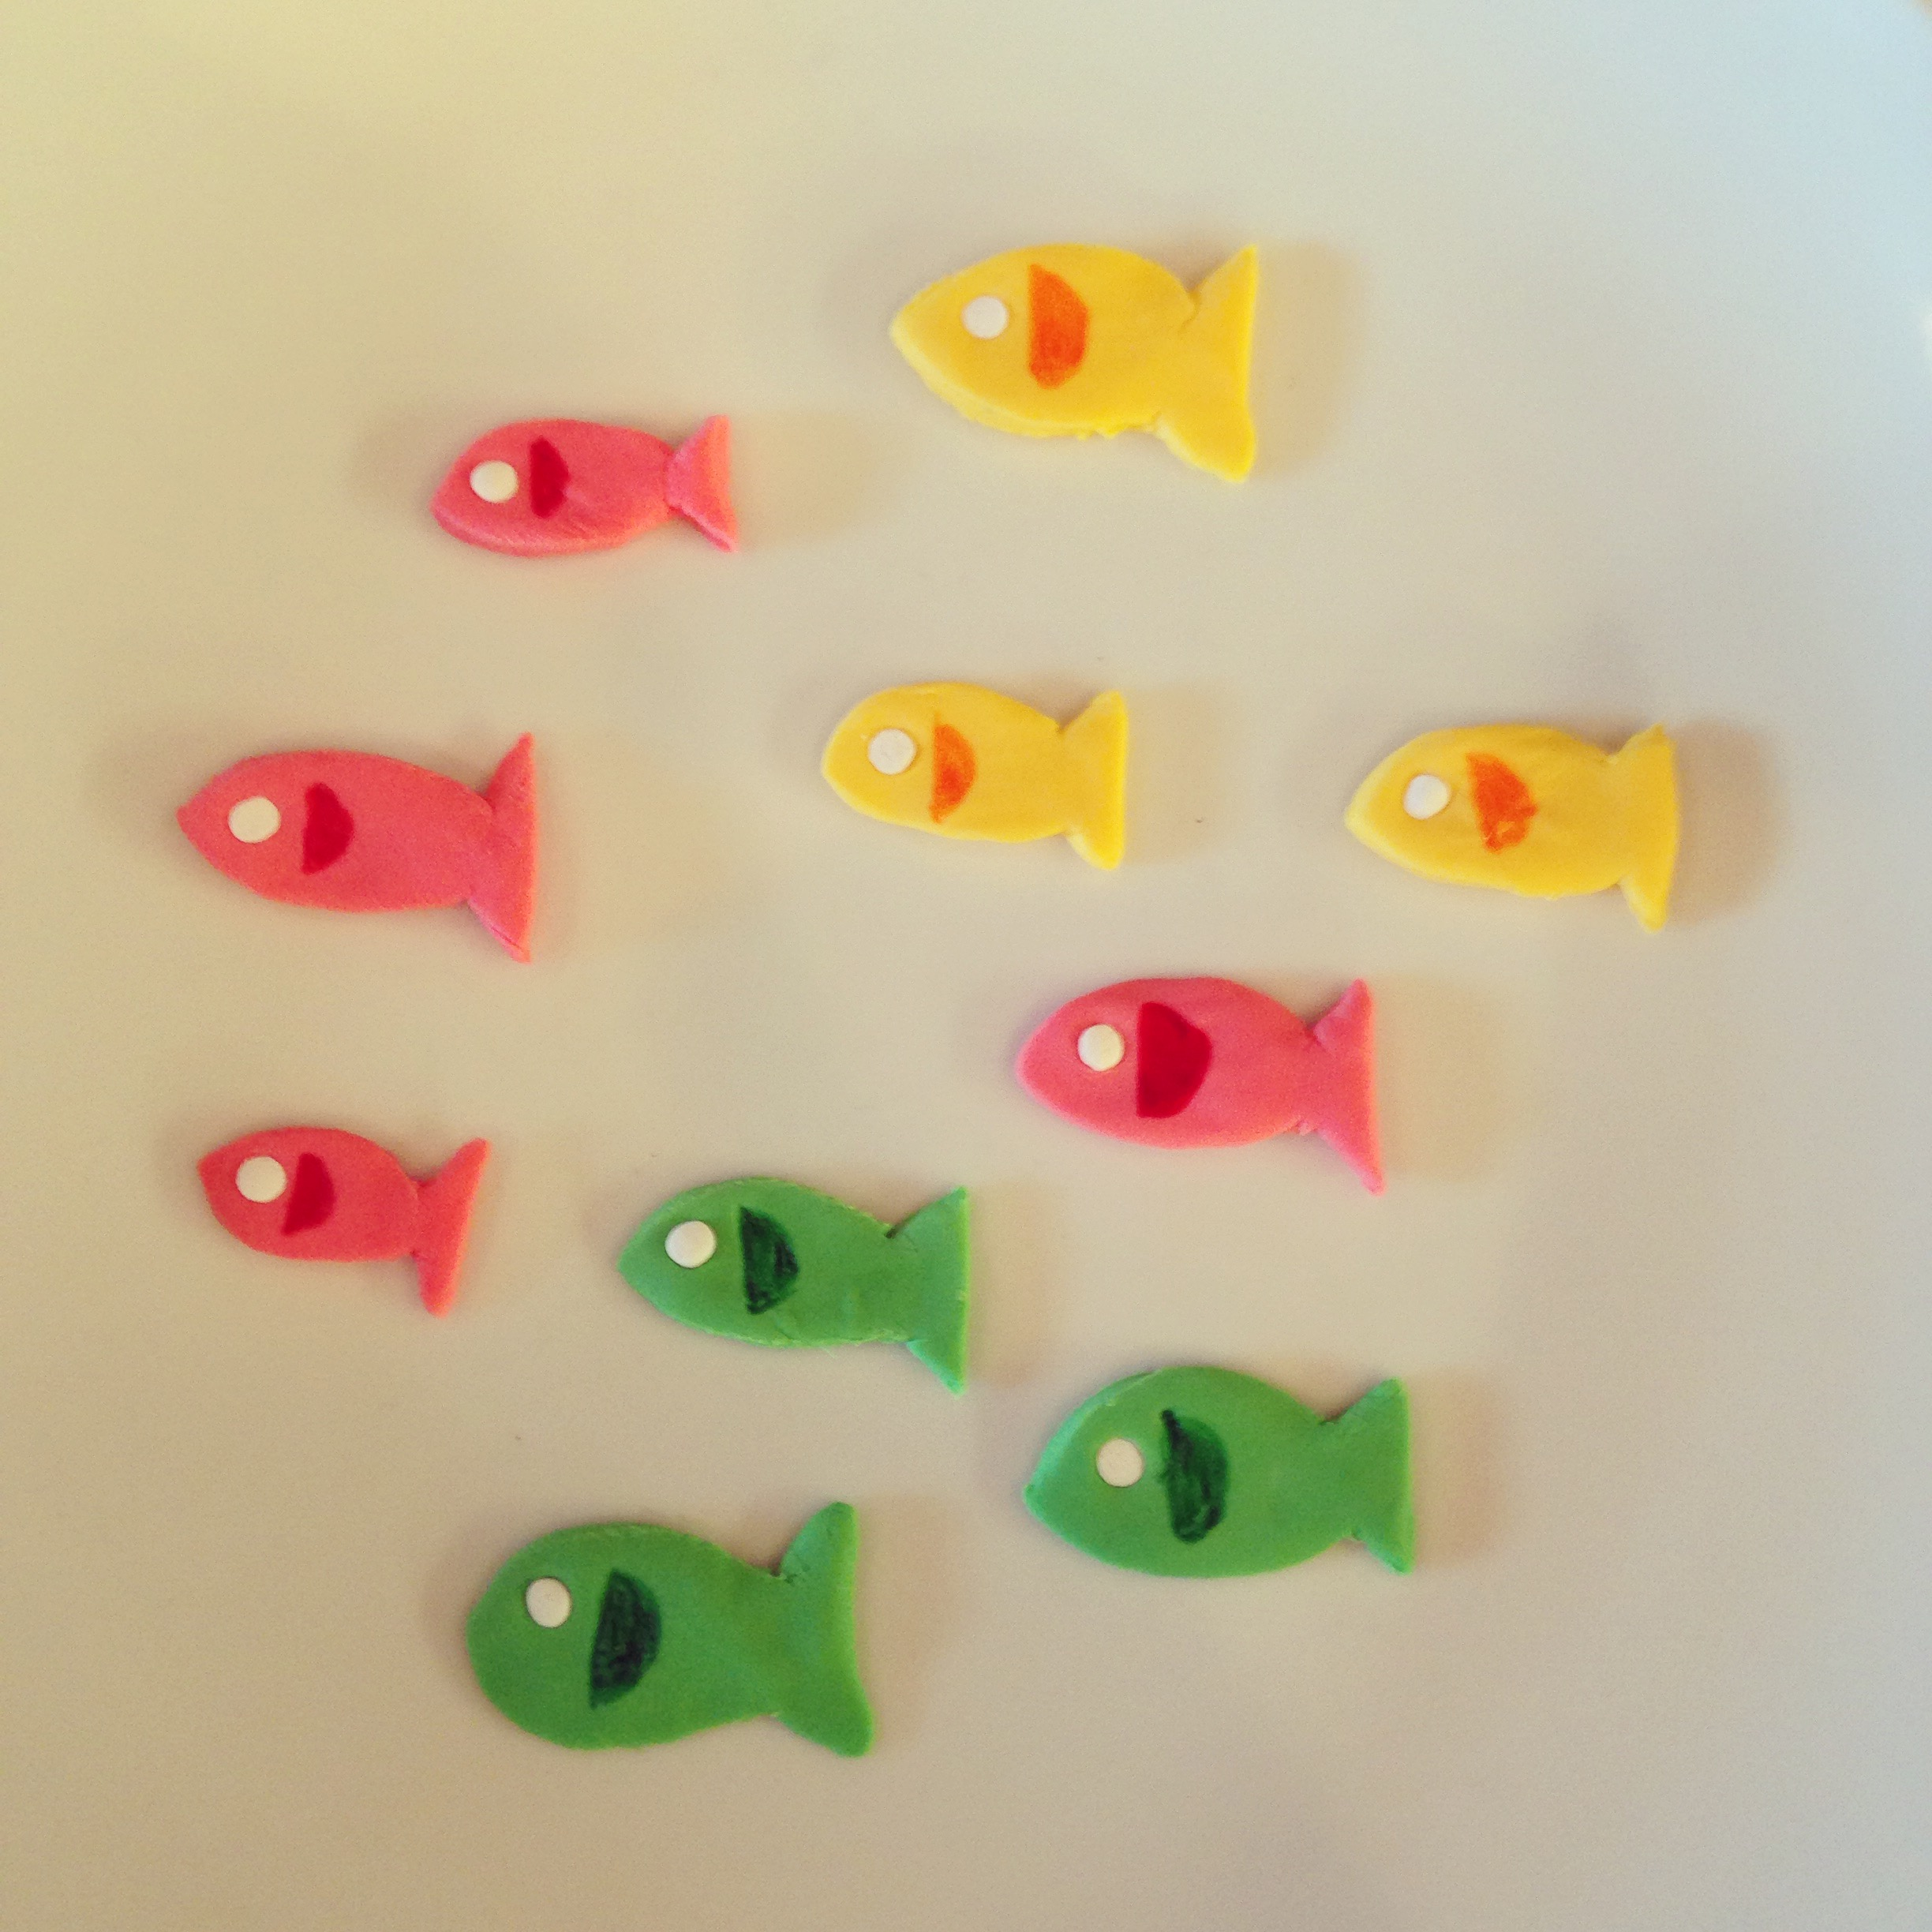 fondant school of fish